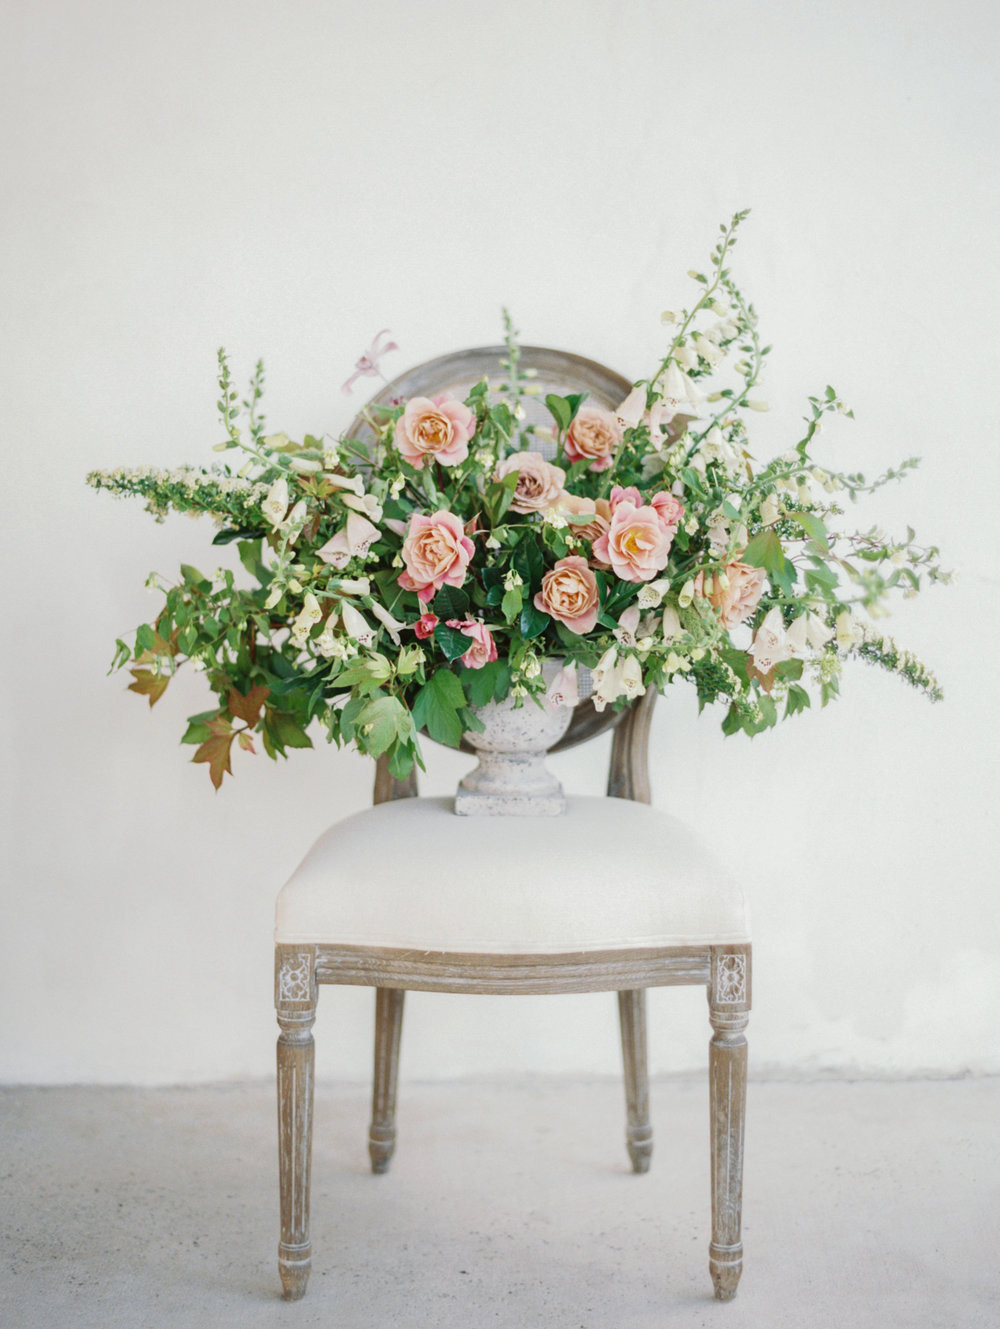 Feminine Styled Shoot Seen on Elizabeth Ann Designs